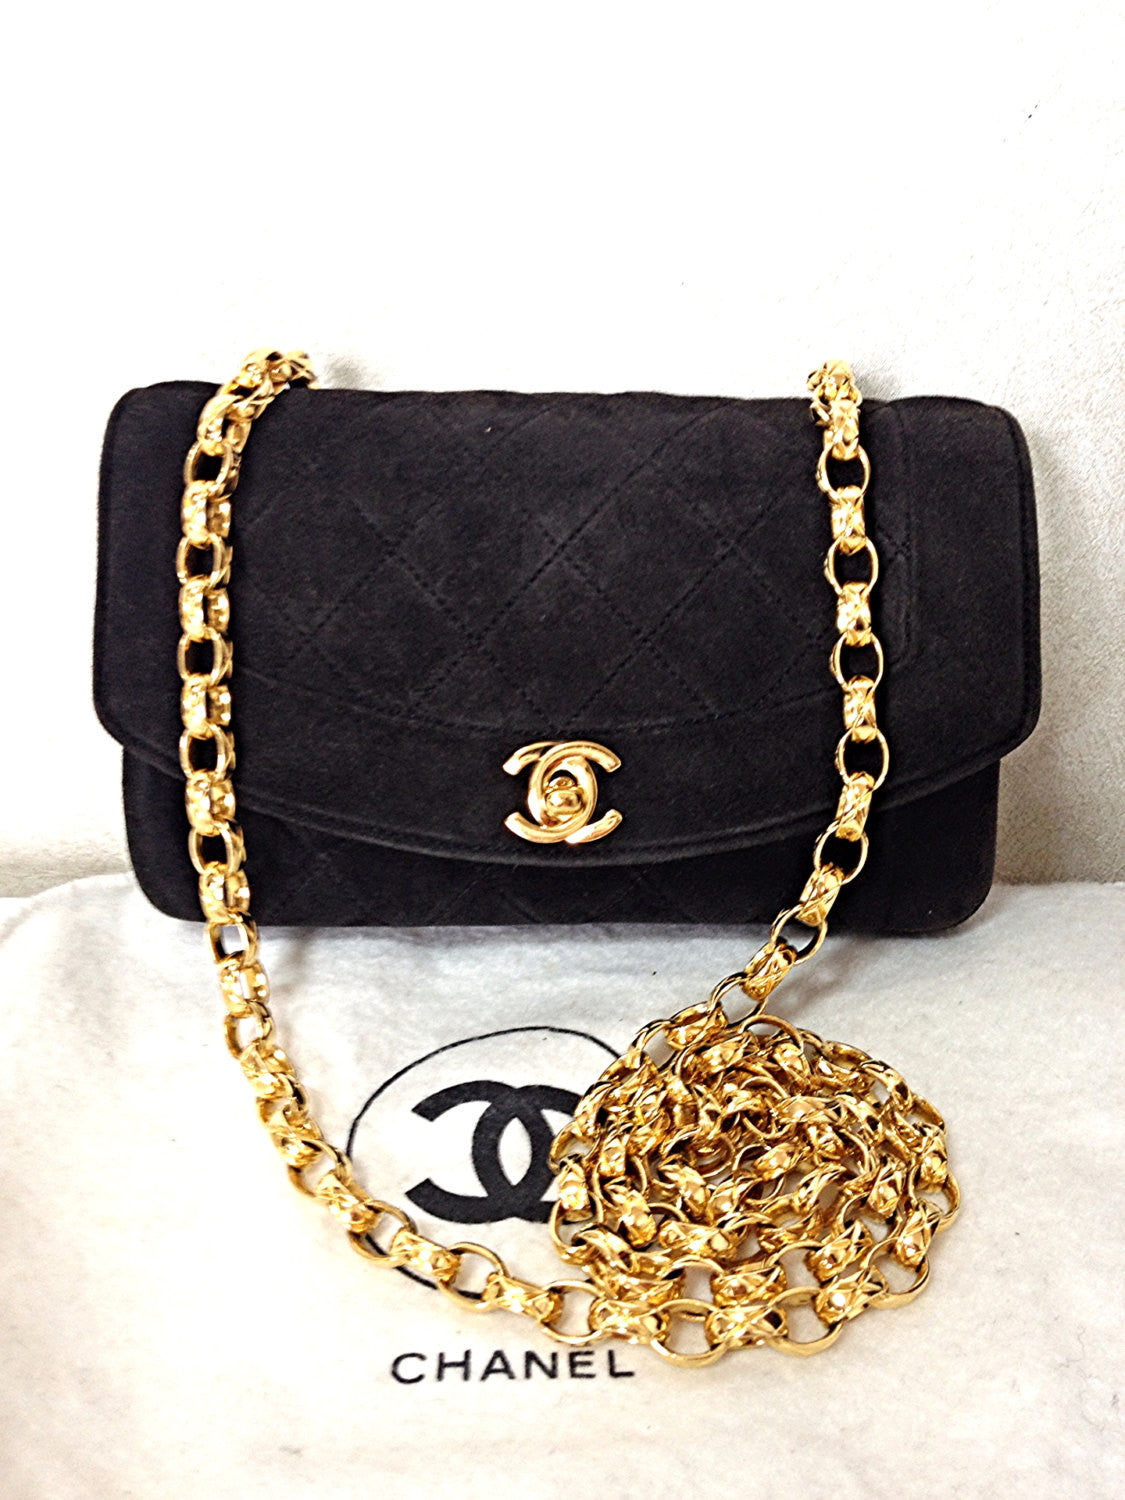 Vintage CHANEL charcoal black suede leather classic 2.55 shoulder purse with gold tone chain straps. Must have daily purse